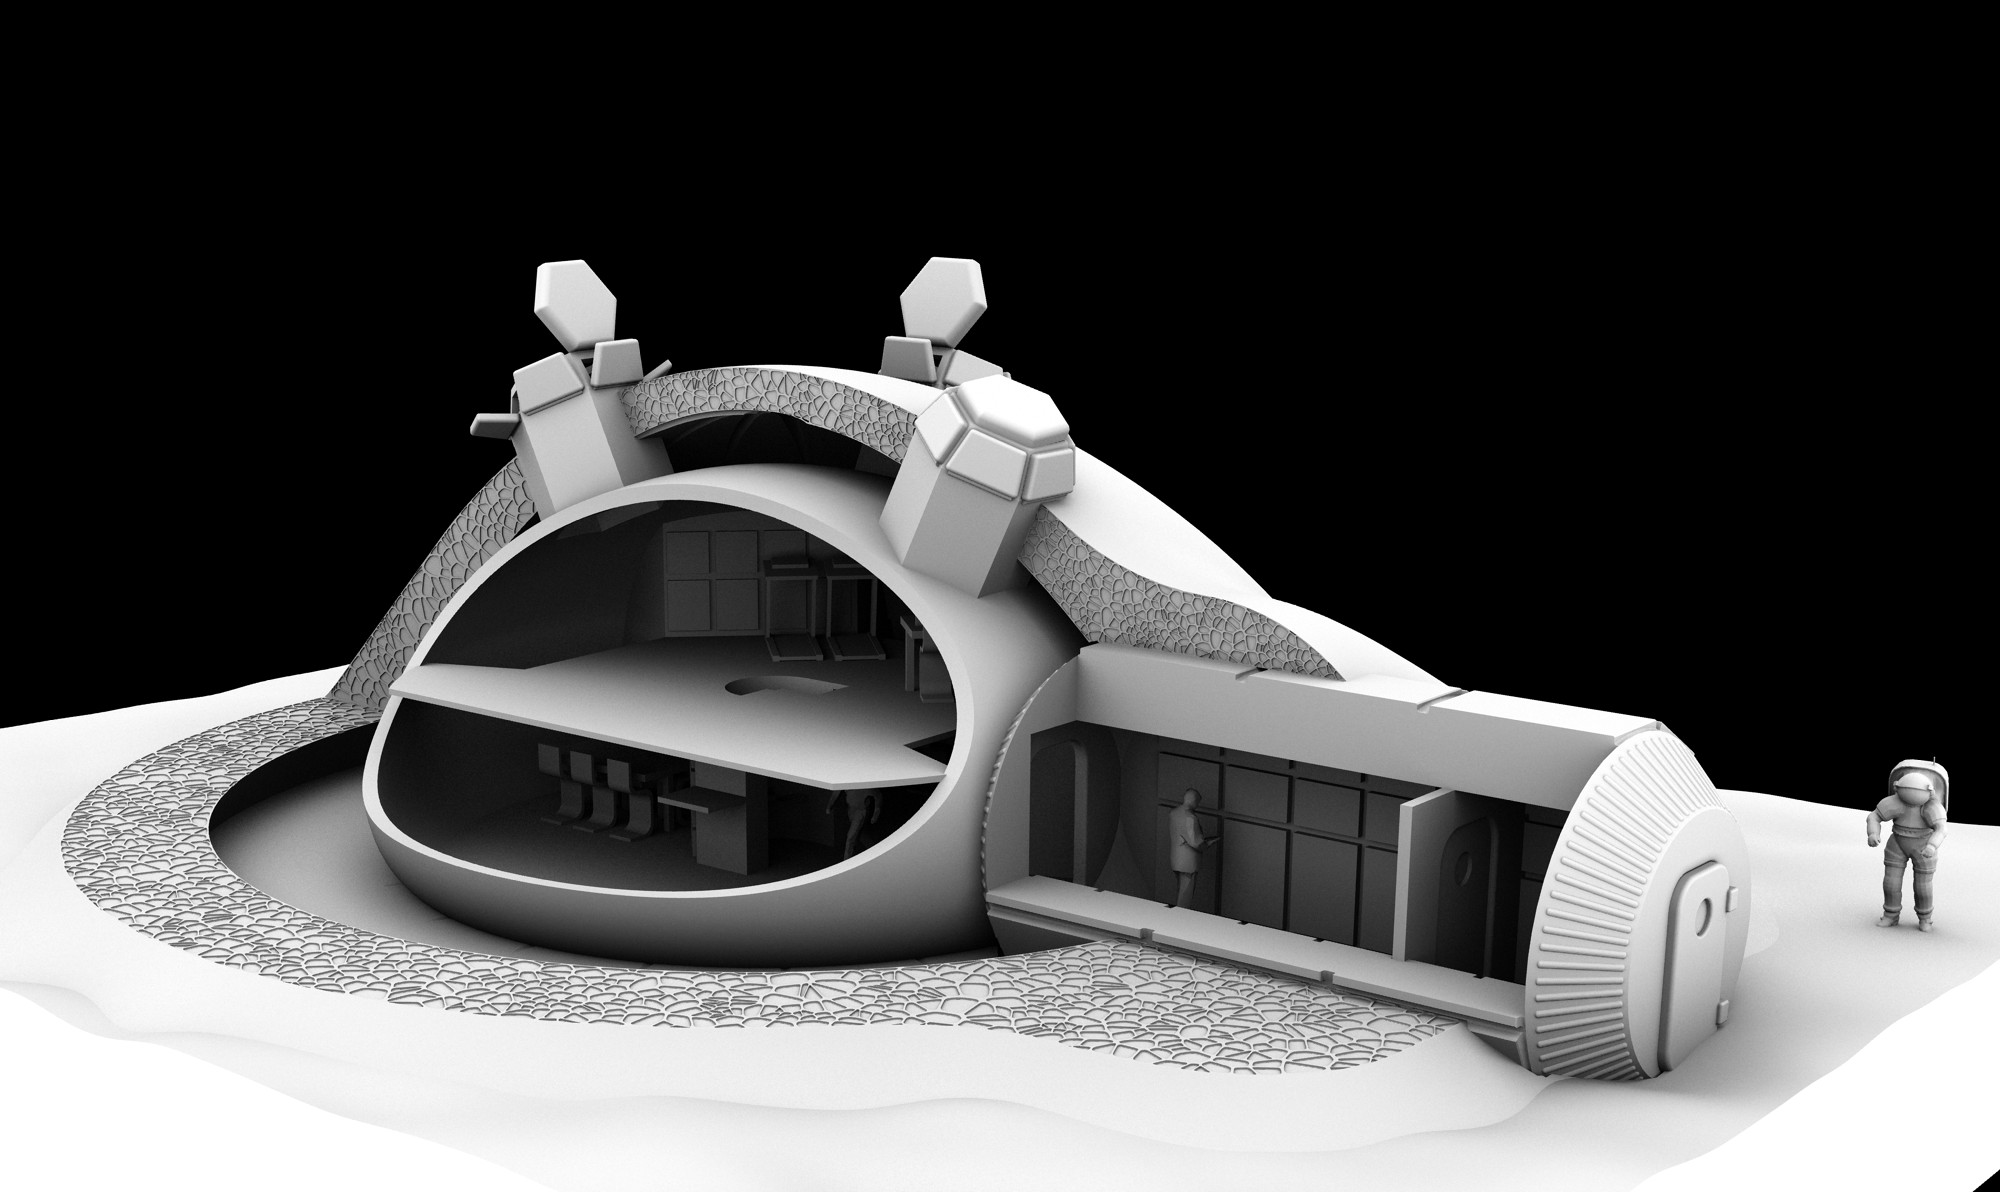 http://www.esa.int/var/esa/storage/images/esa_multimedia/images/2013/01/3d-printed_lunar_base_design/12501079-1-eng-GB/3D-printed_lunar_base_design.png